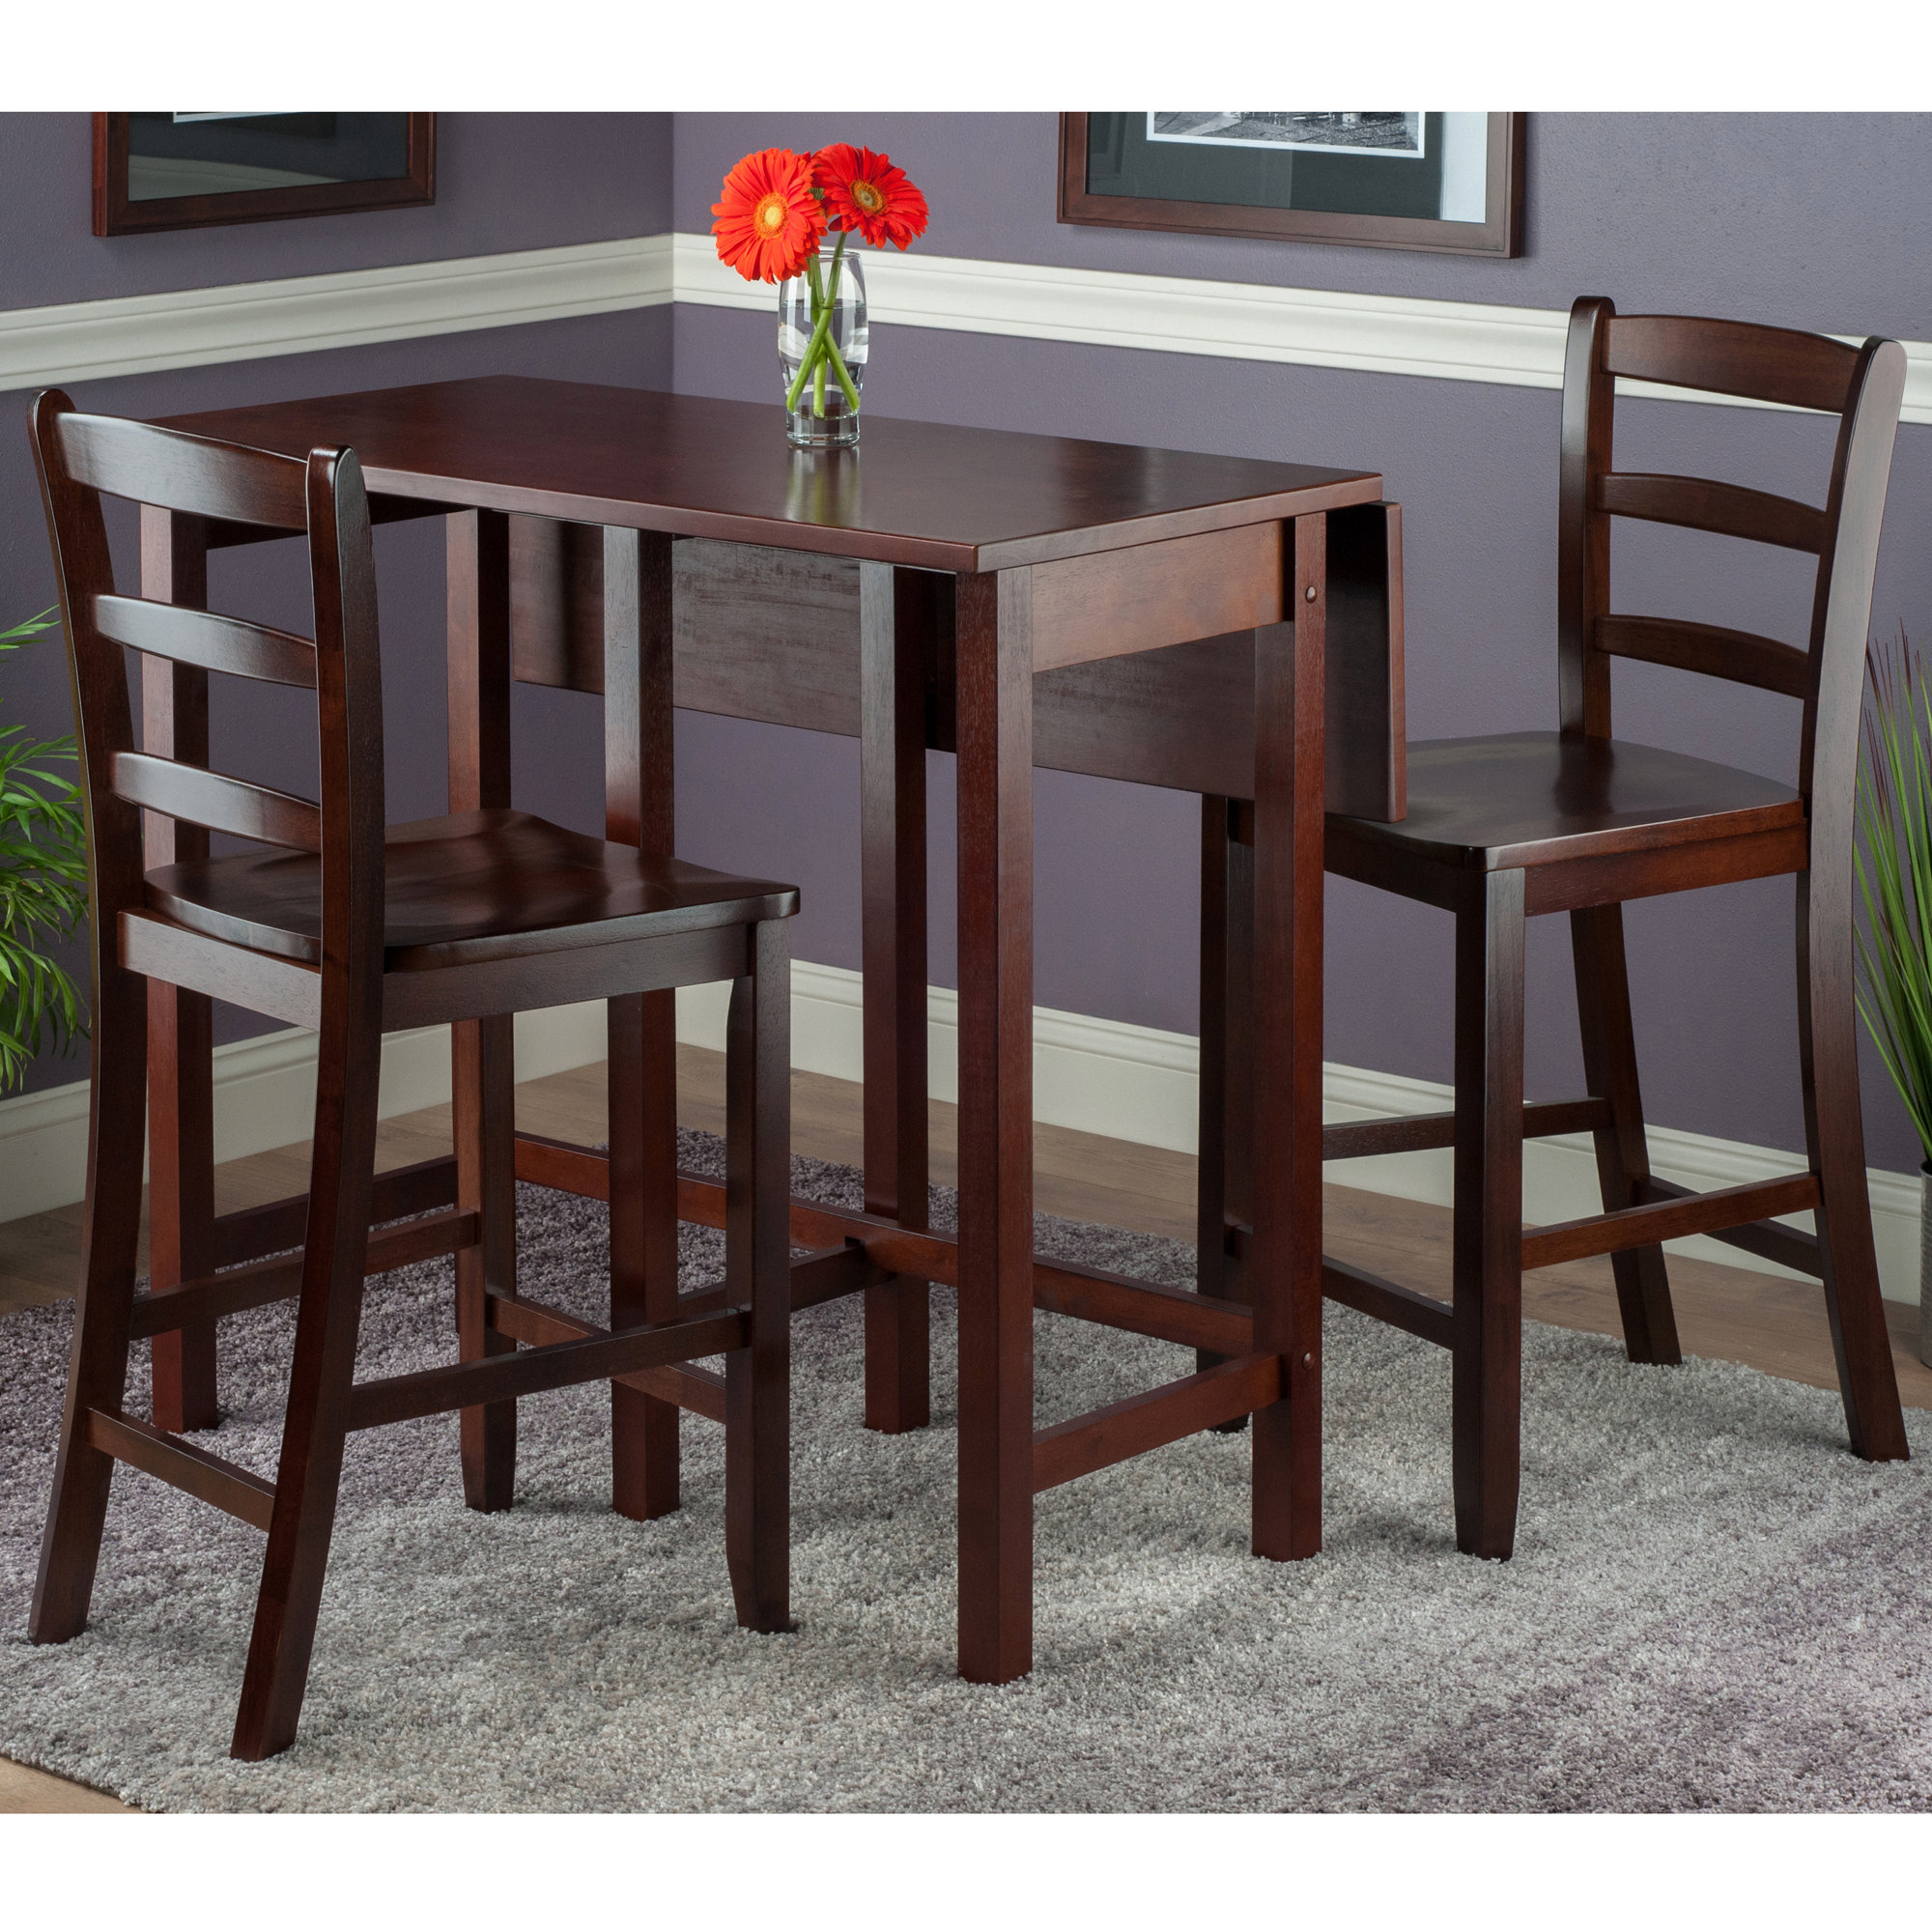 Famous Bettencourt 3 Piece Counter Height Dining Sets Inside Bettencourt 3 Piece Drop Leaf Dining Set (Gallery 4 of 20)